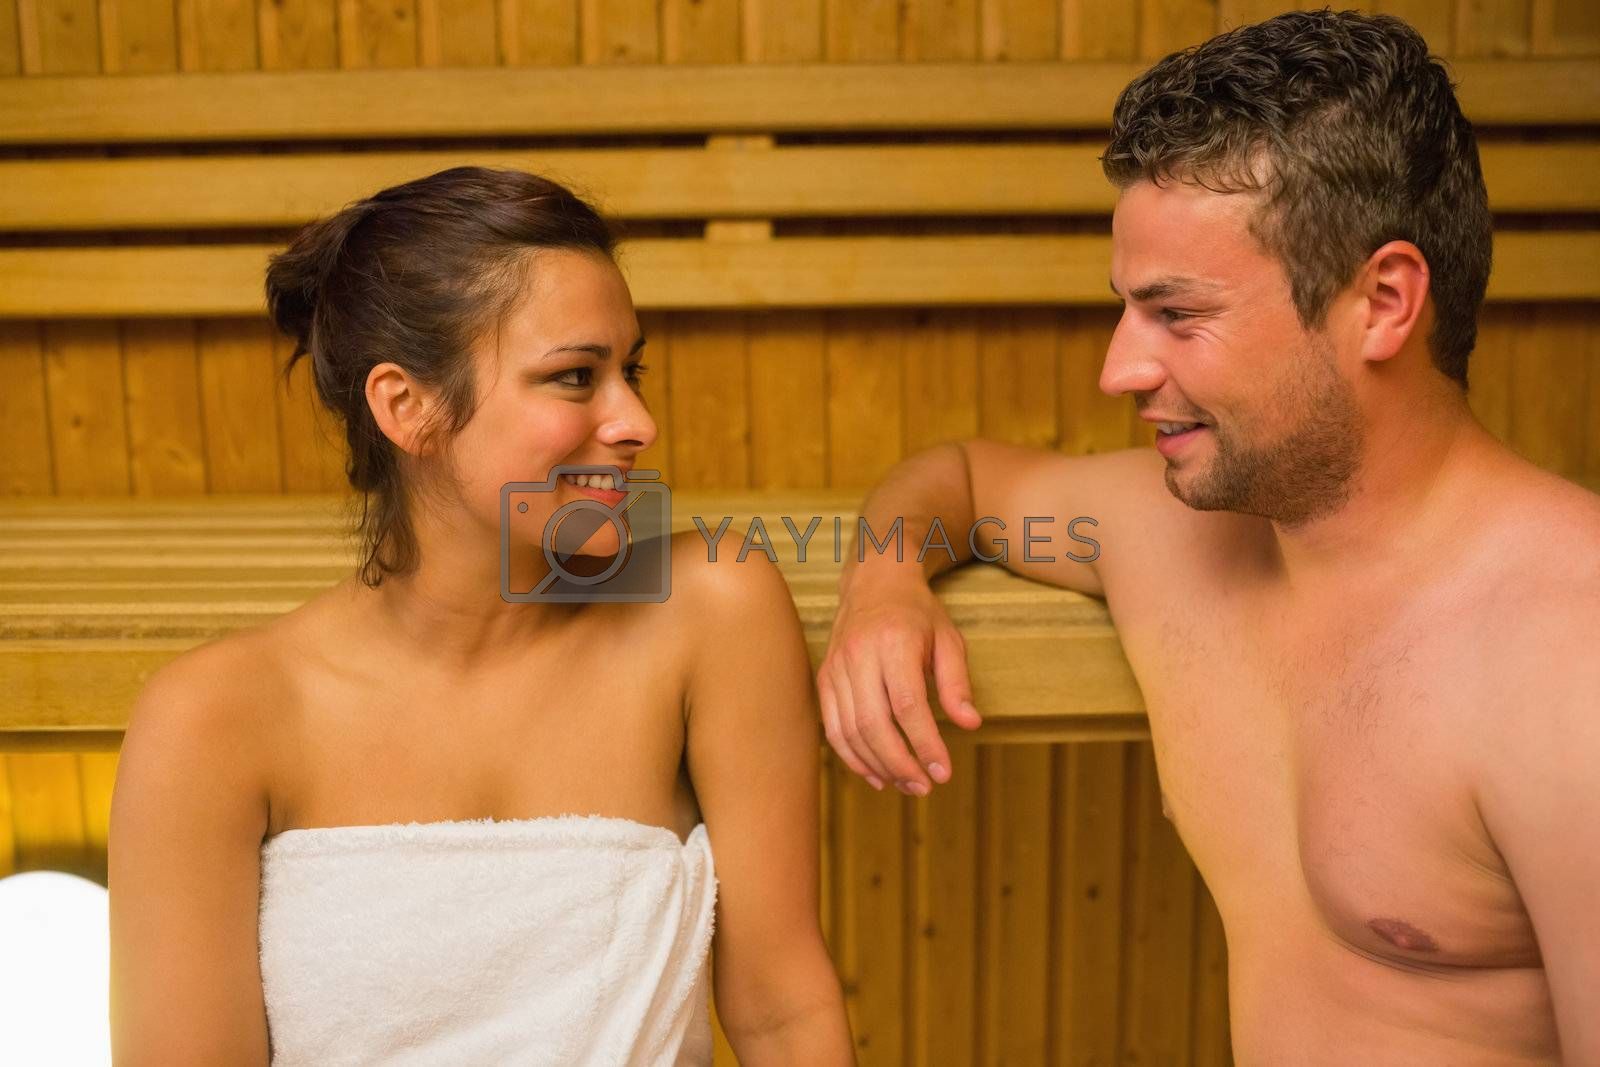 Smiling couple relaxing in a sauna and chatting by Wavebreakmedia